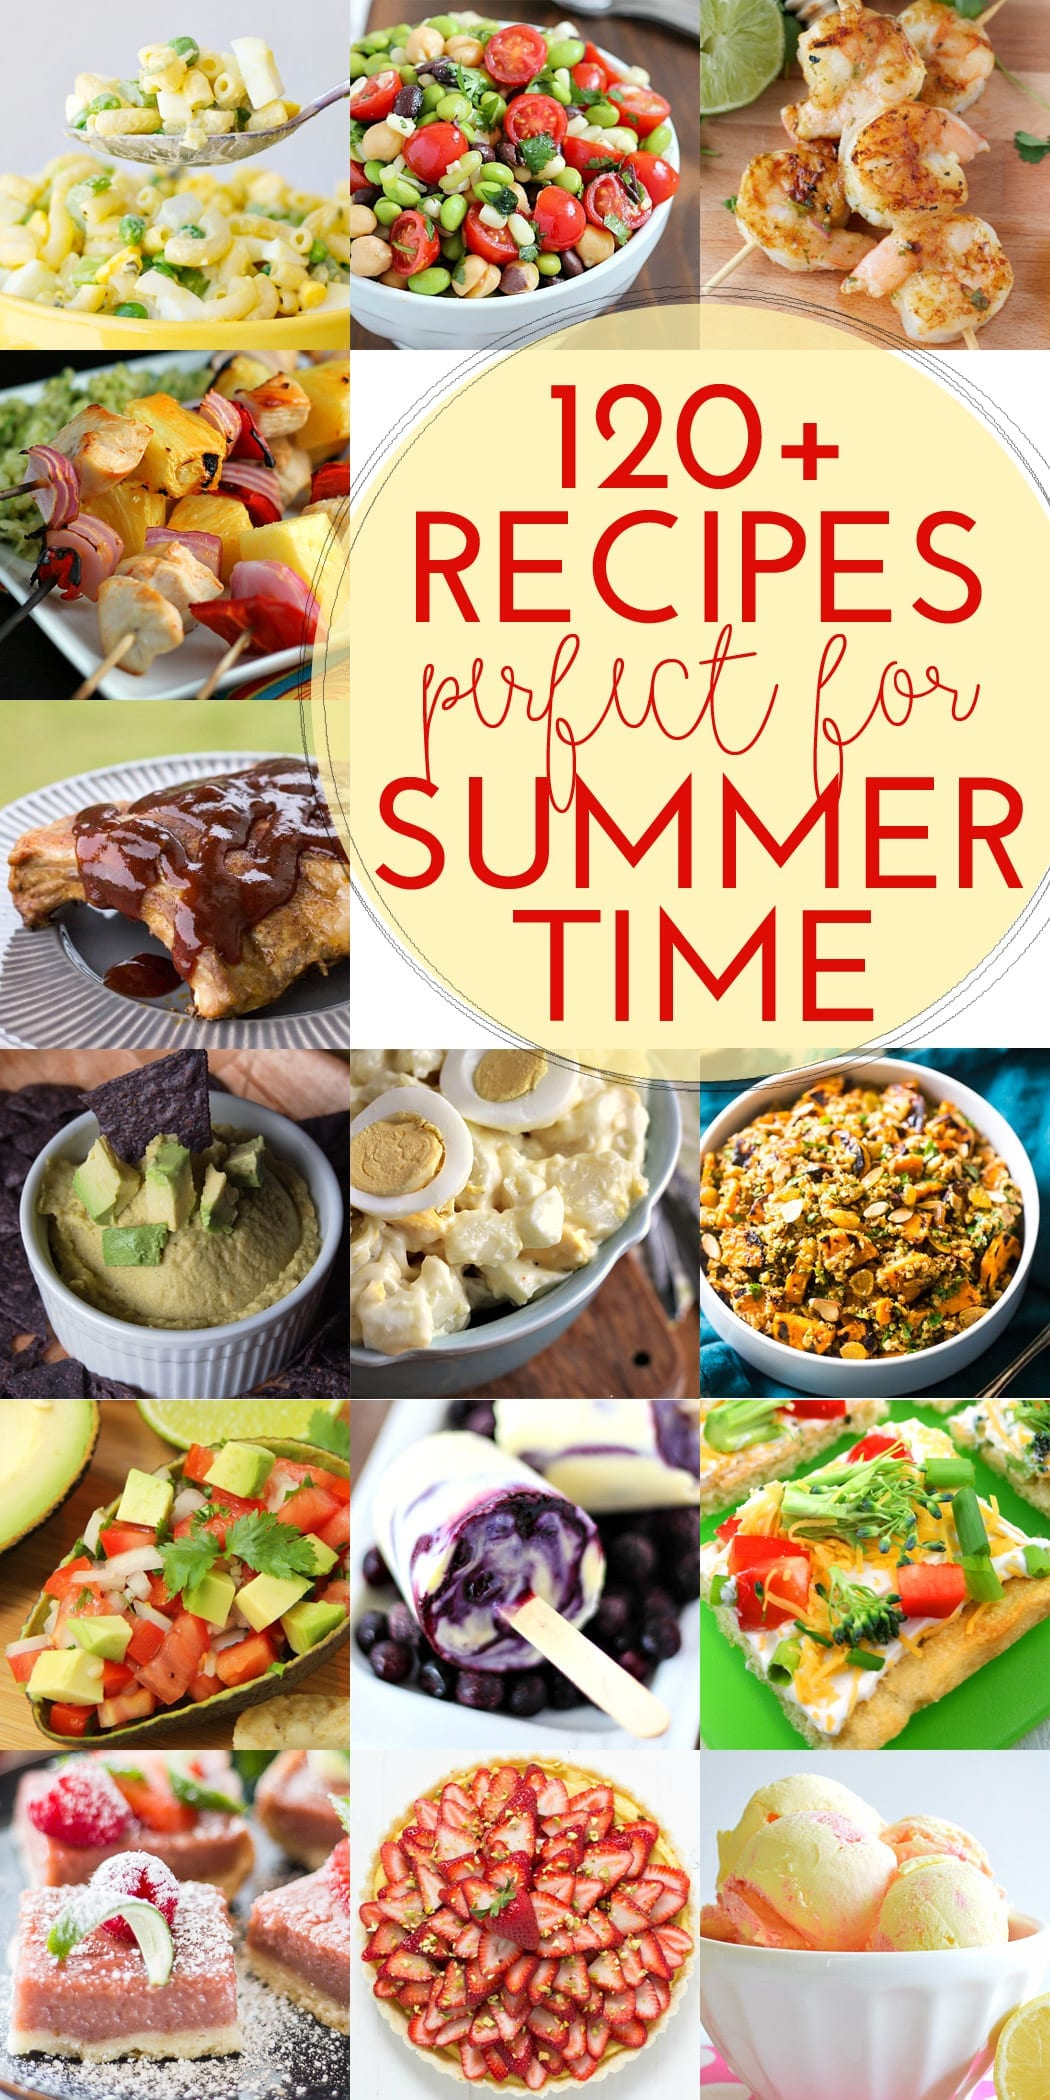 100+ Recipes for Summer